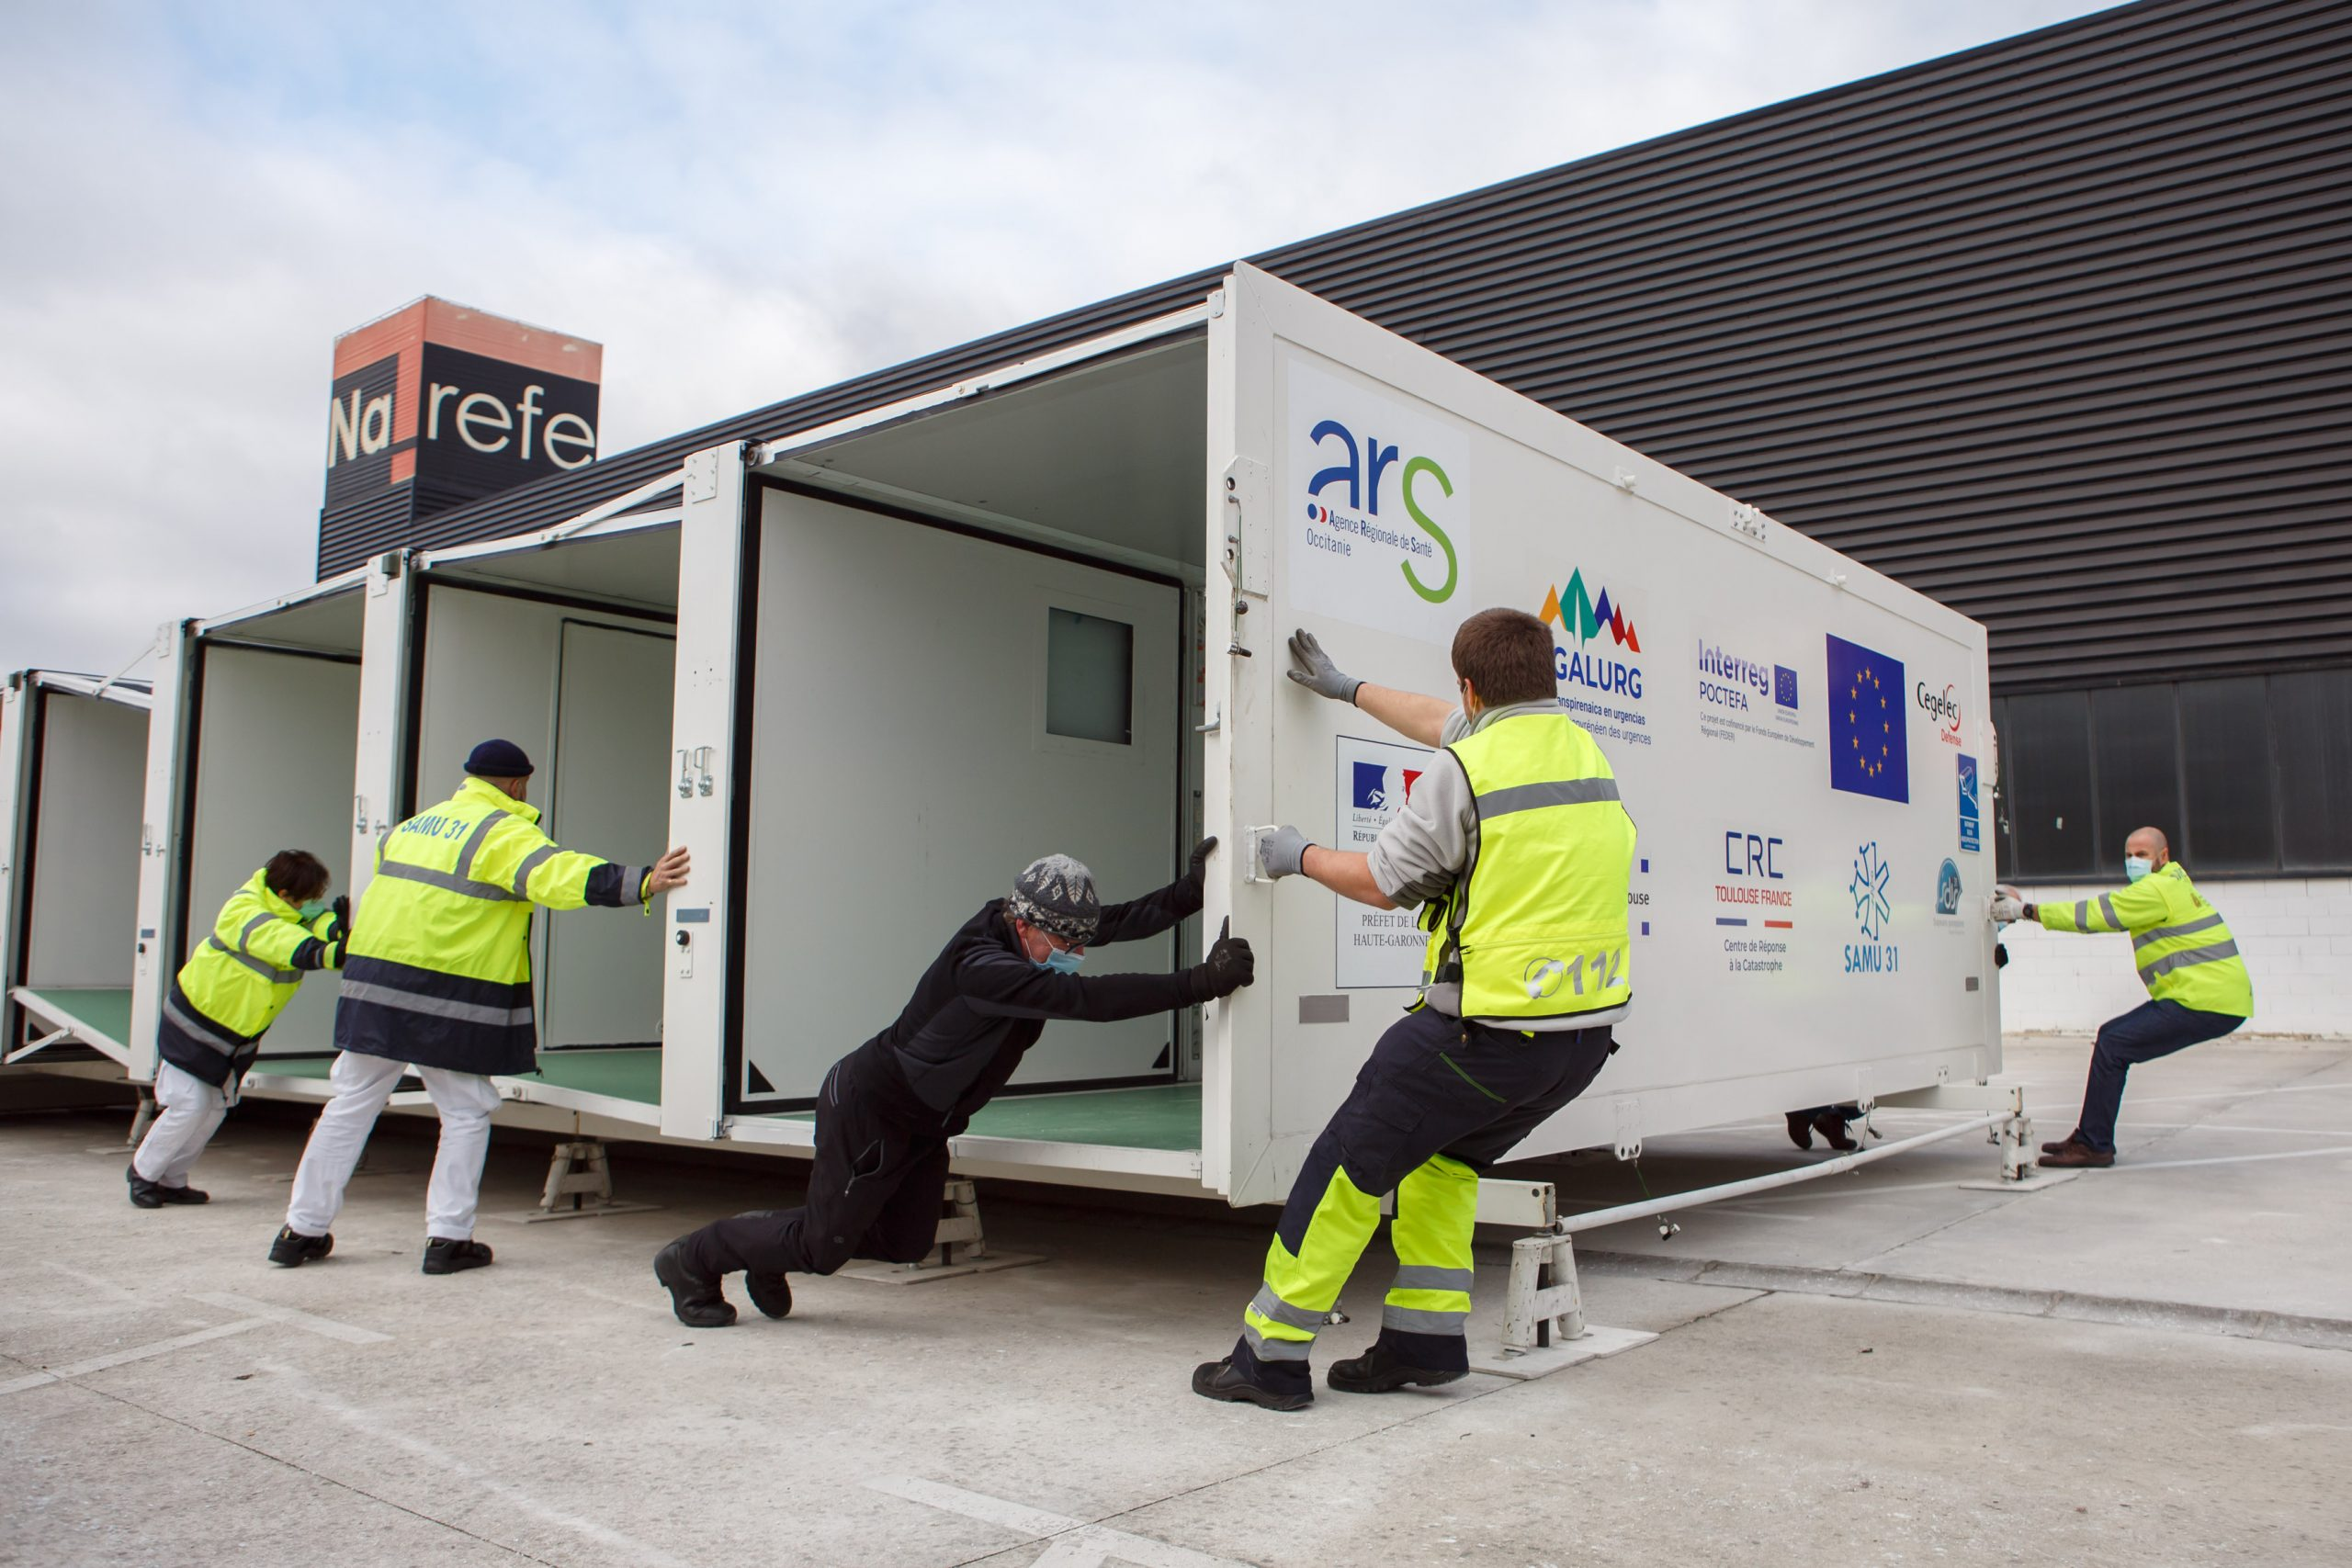 A mobile hospital providing emergency services will travel to several locations in Navarre in coming weeks to support COVID-19 vaccination procedures